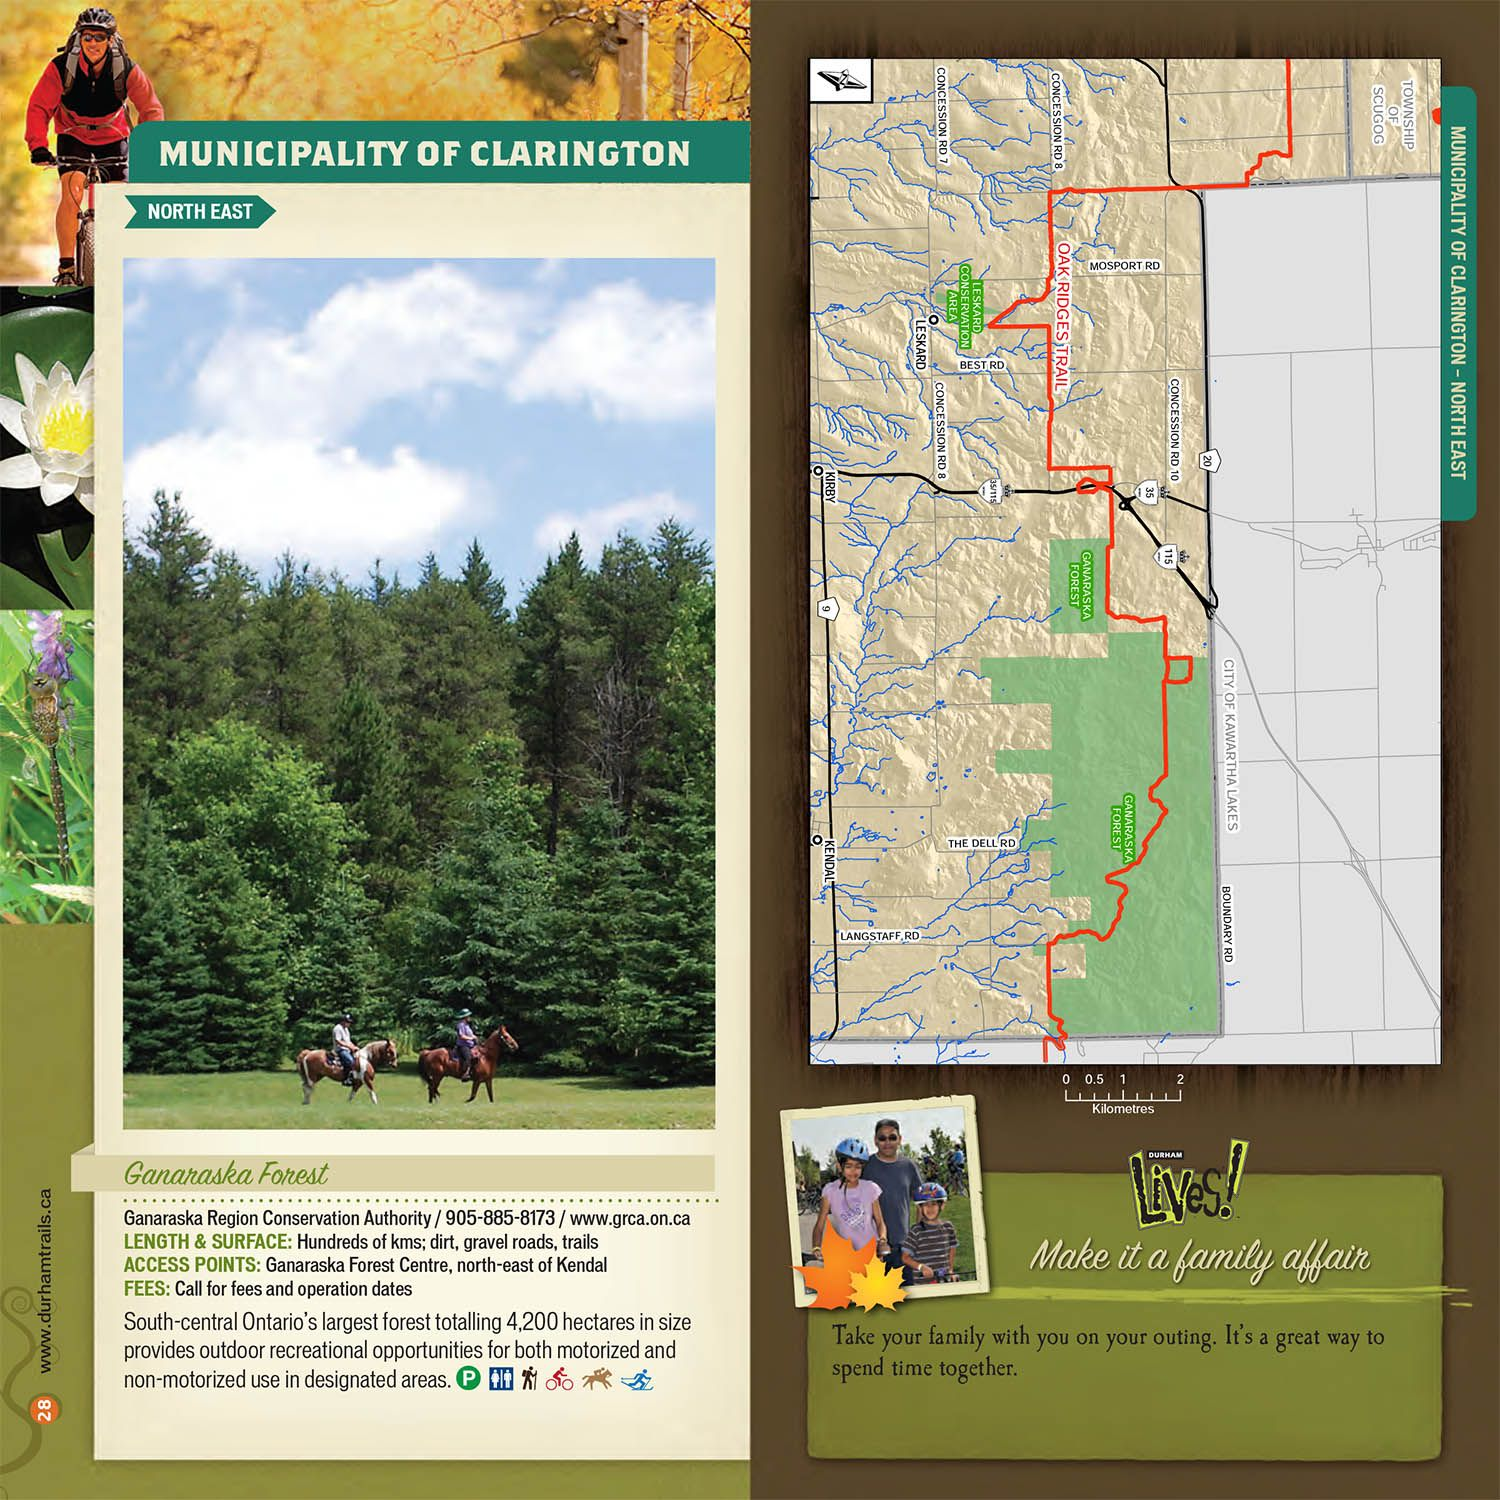 Municipality of Clarington Northeast Trail Guide